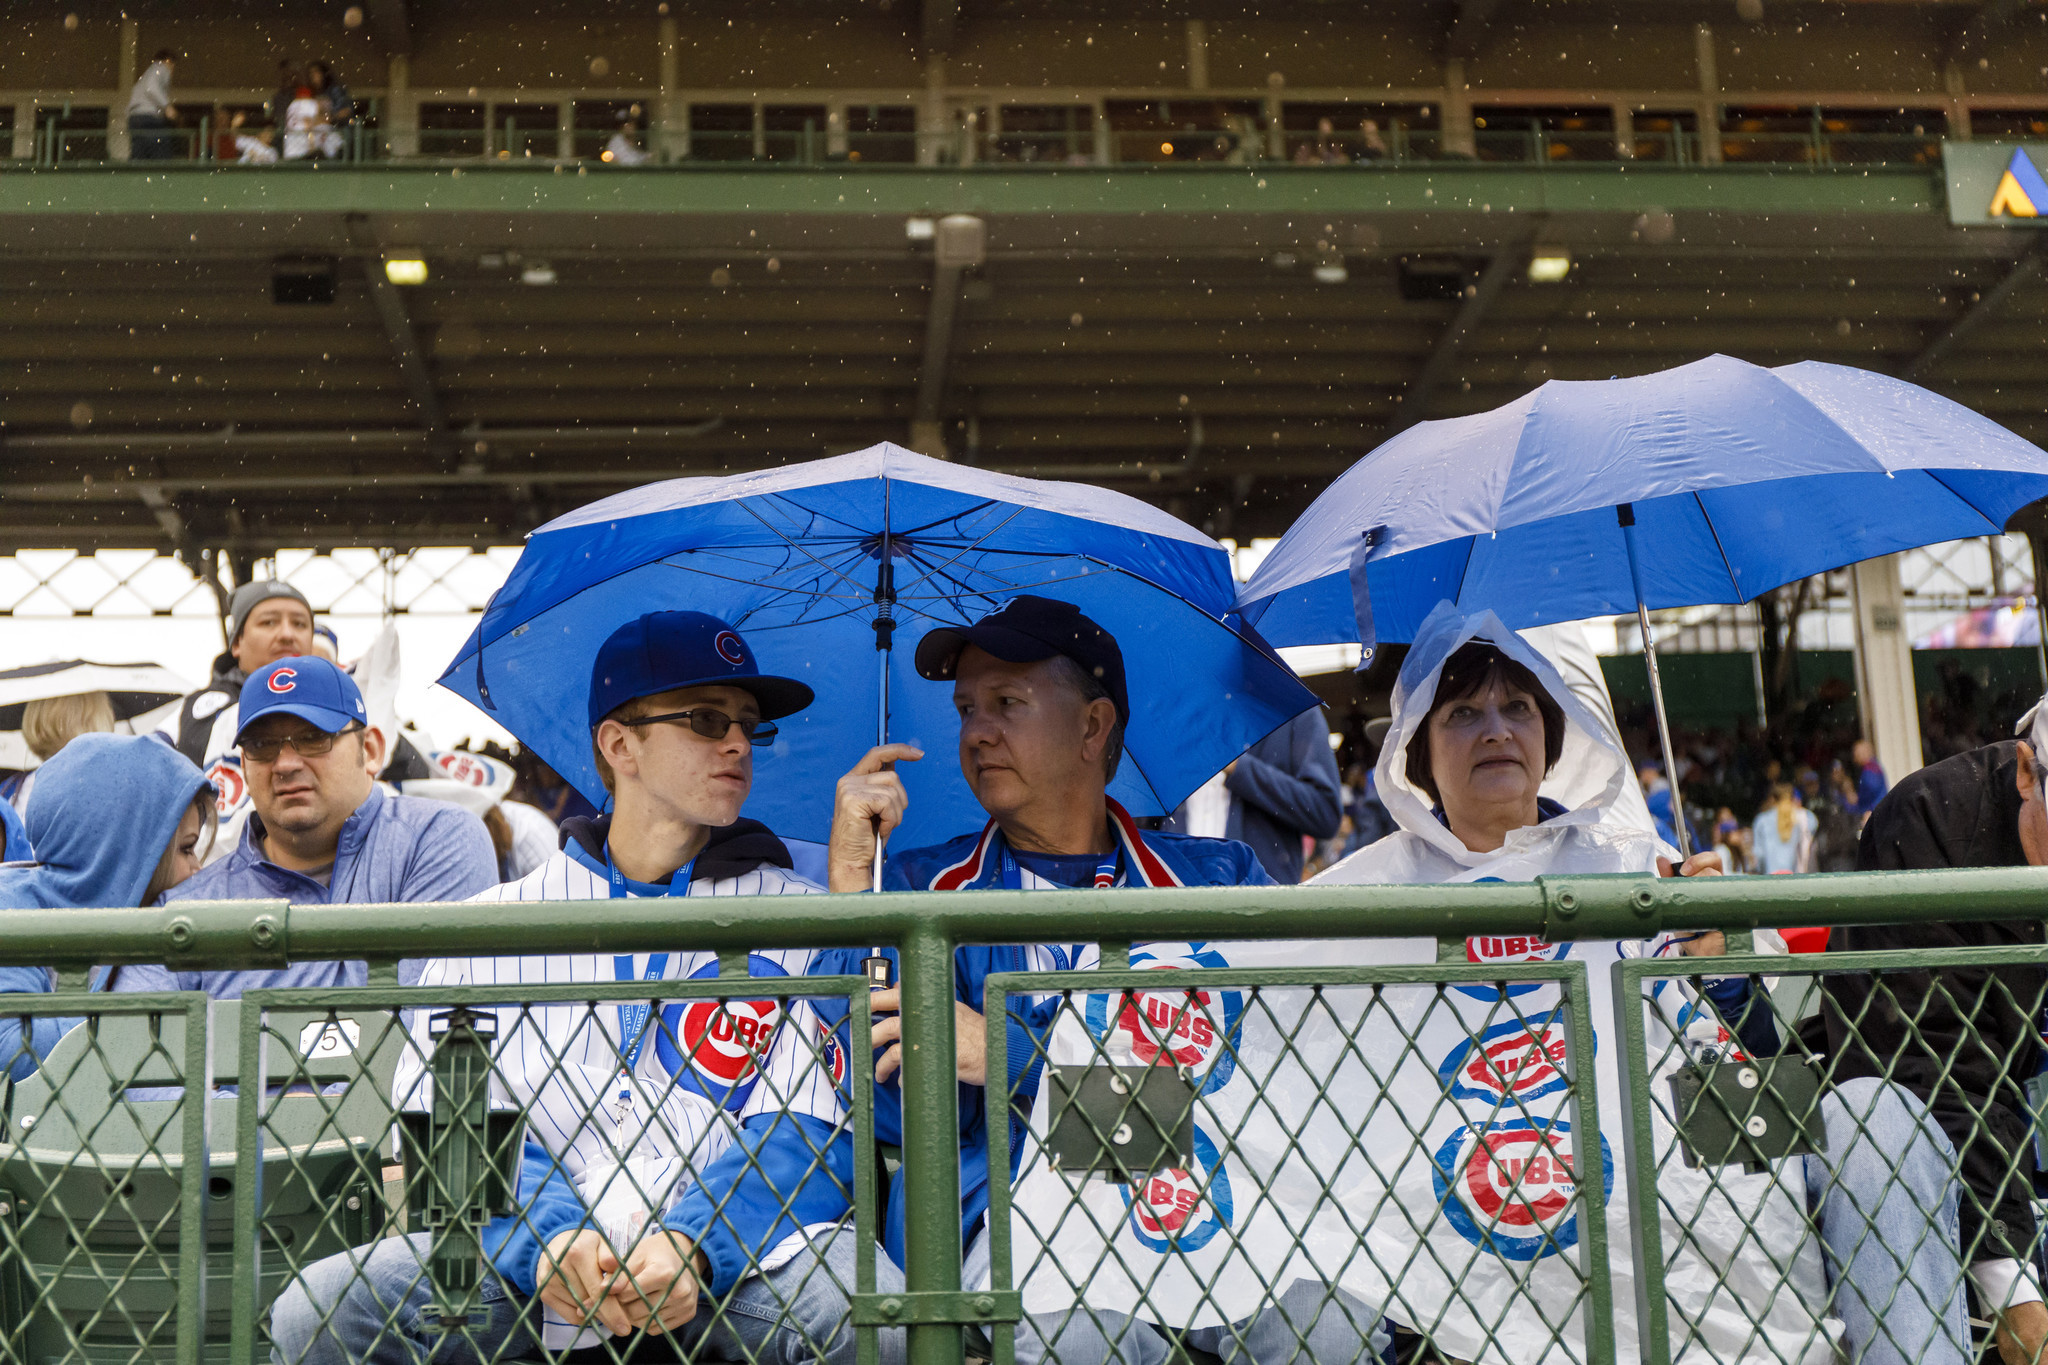 Baseball fans dodging more cold snaps, heavy rainfall as climate patterns change